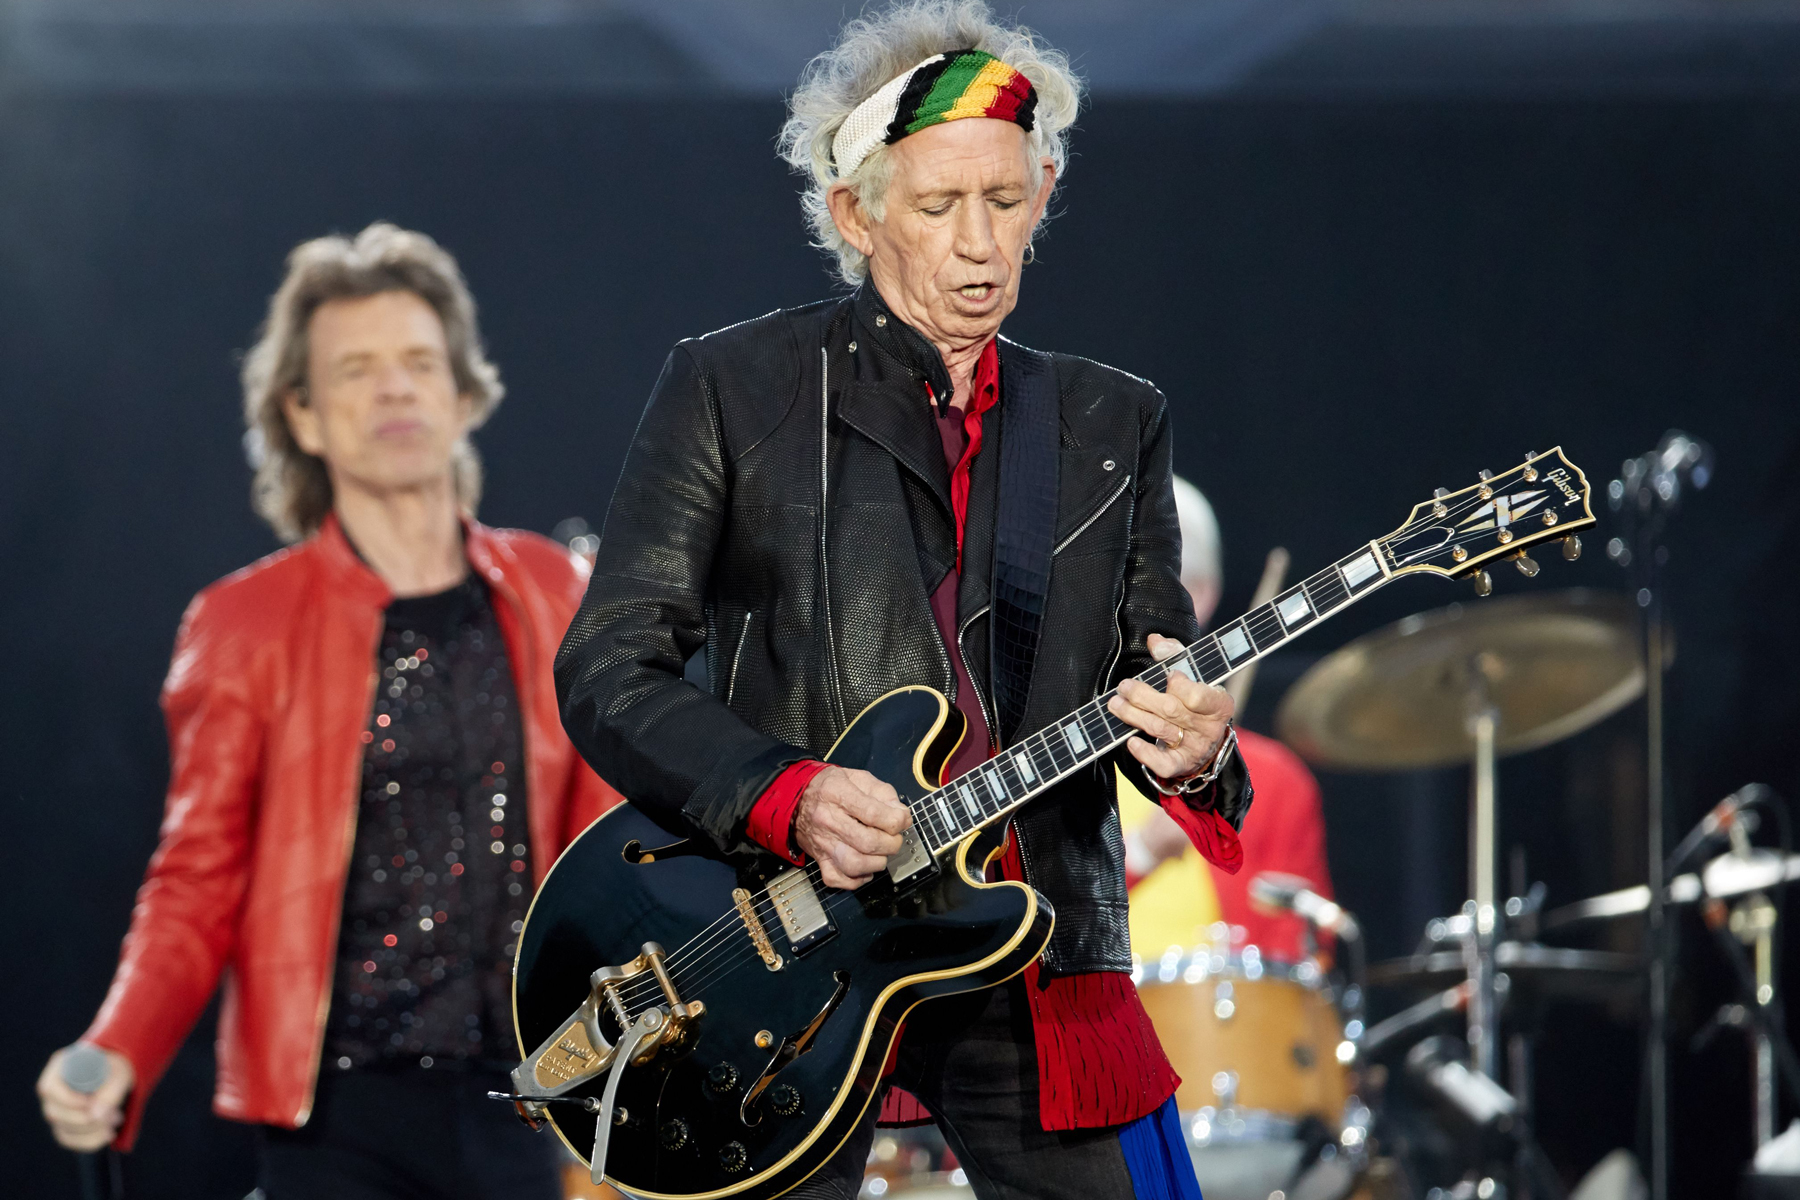 7f7b939e7683 Keith RichardsThe Rolling Stones in concert in Berlin, Germany - 22 Jun  2018Keith Richards (